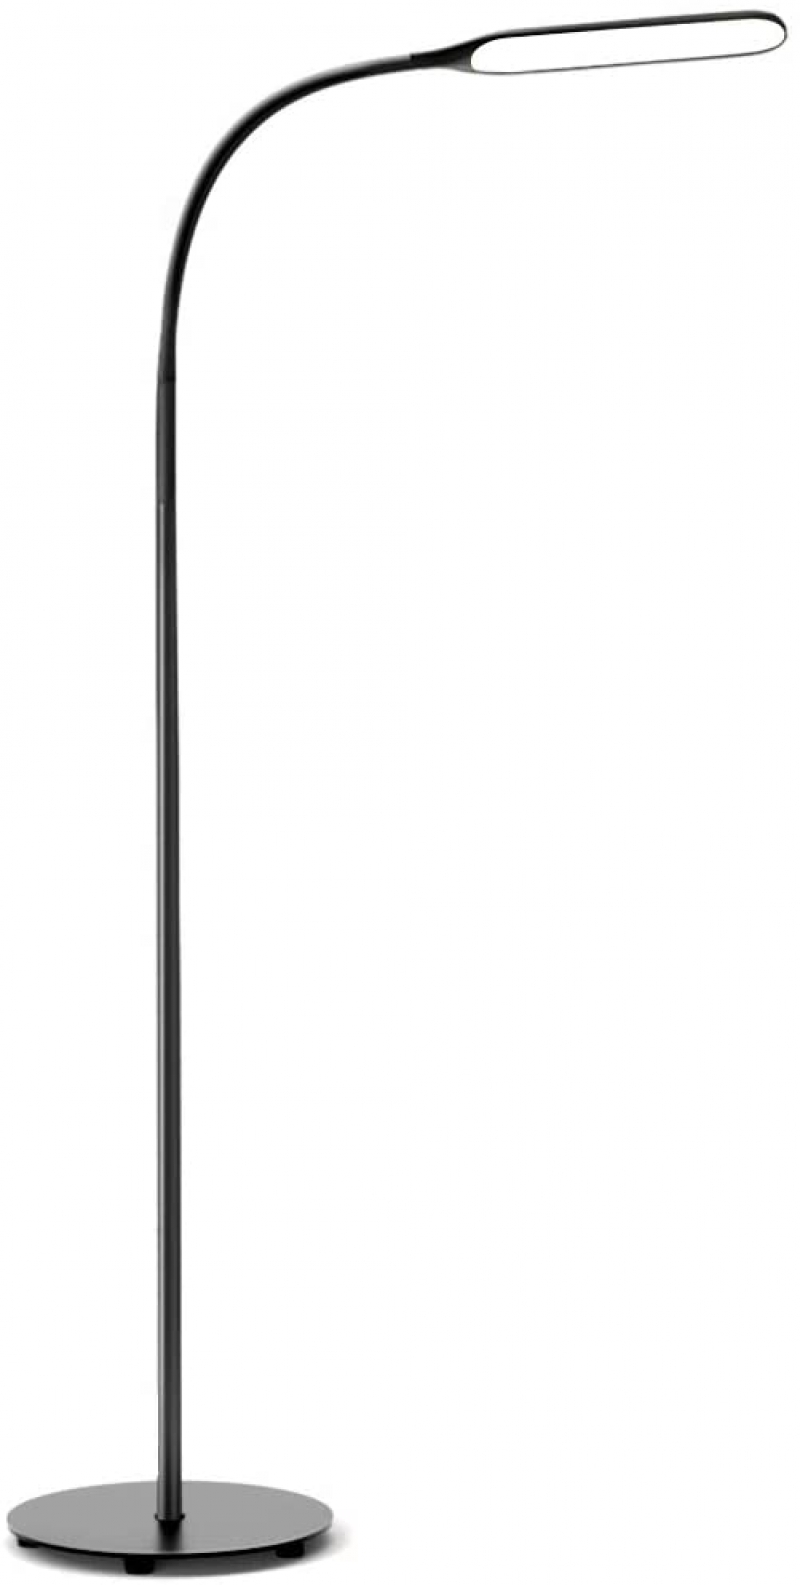 ihocon: Govee LED Floor Lamp with 4 Color Temperatures & Brightness Levels 光線微調落地燈